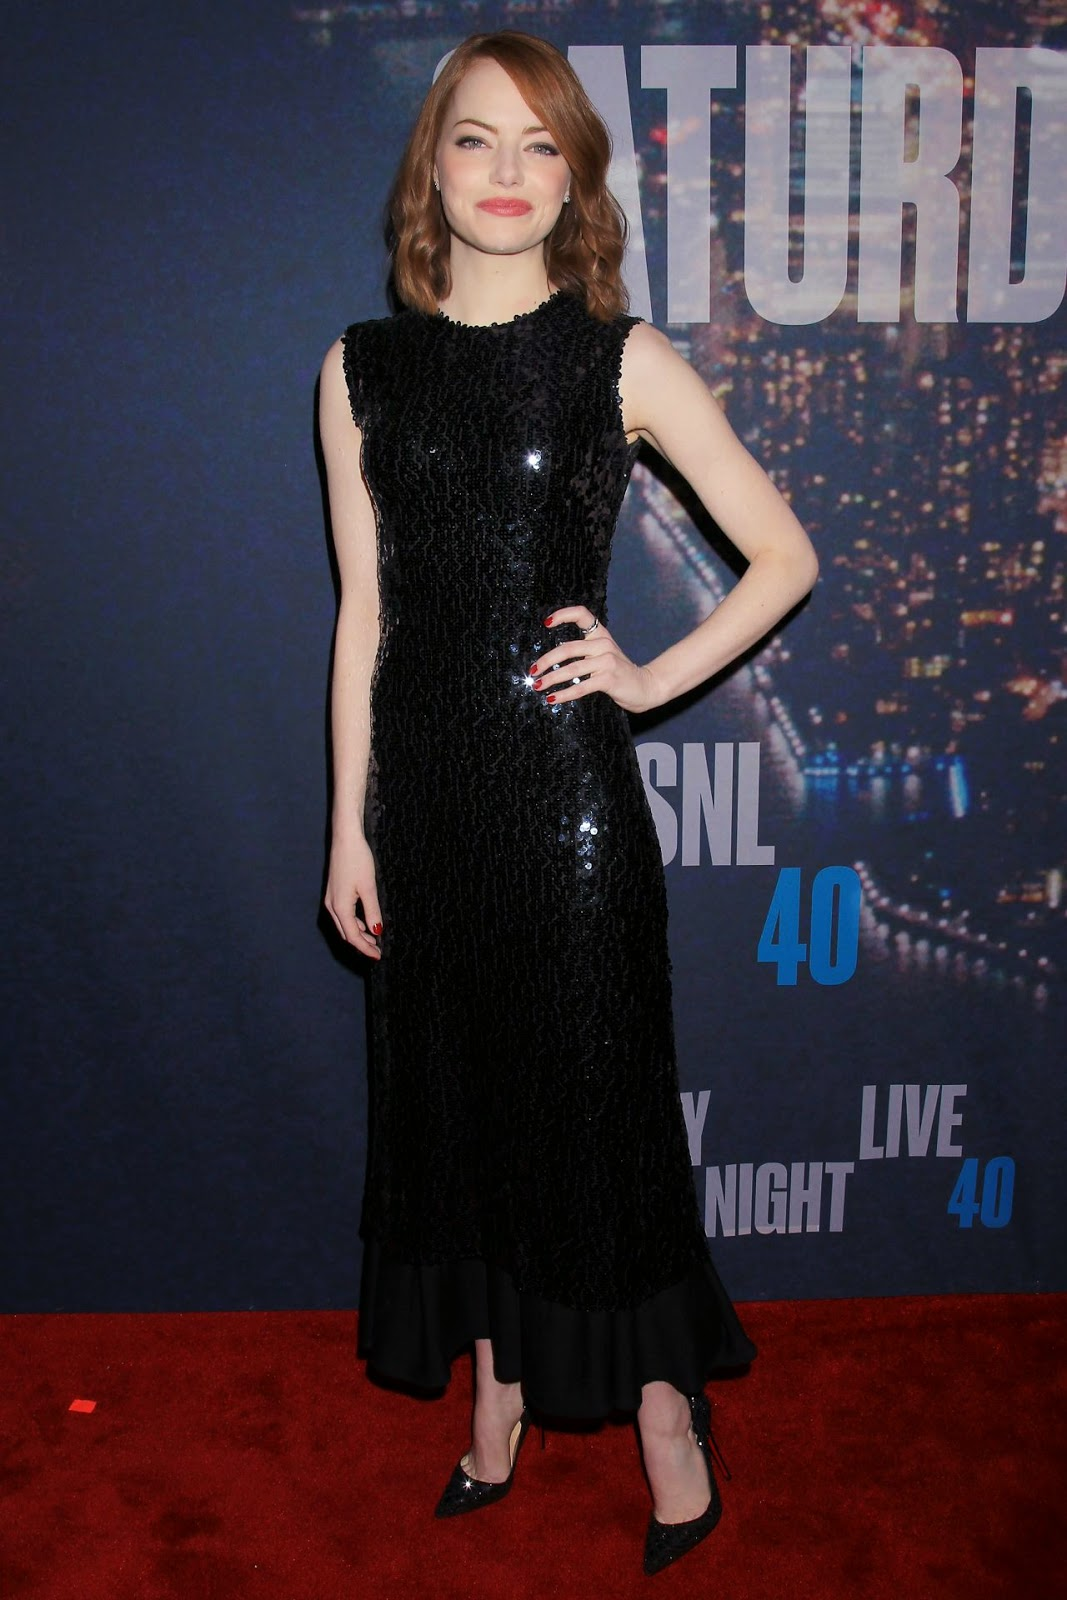 Emma Stone sparkles in a Dior dress at the SNL 40th Anniversary Celebration in NY